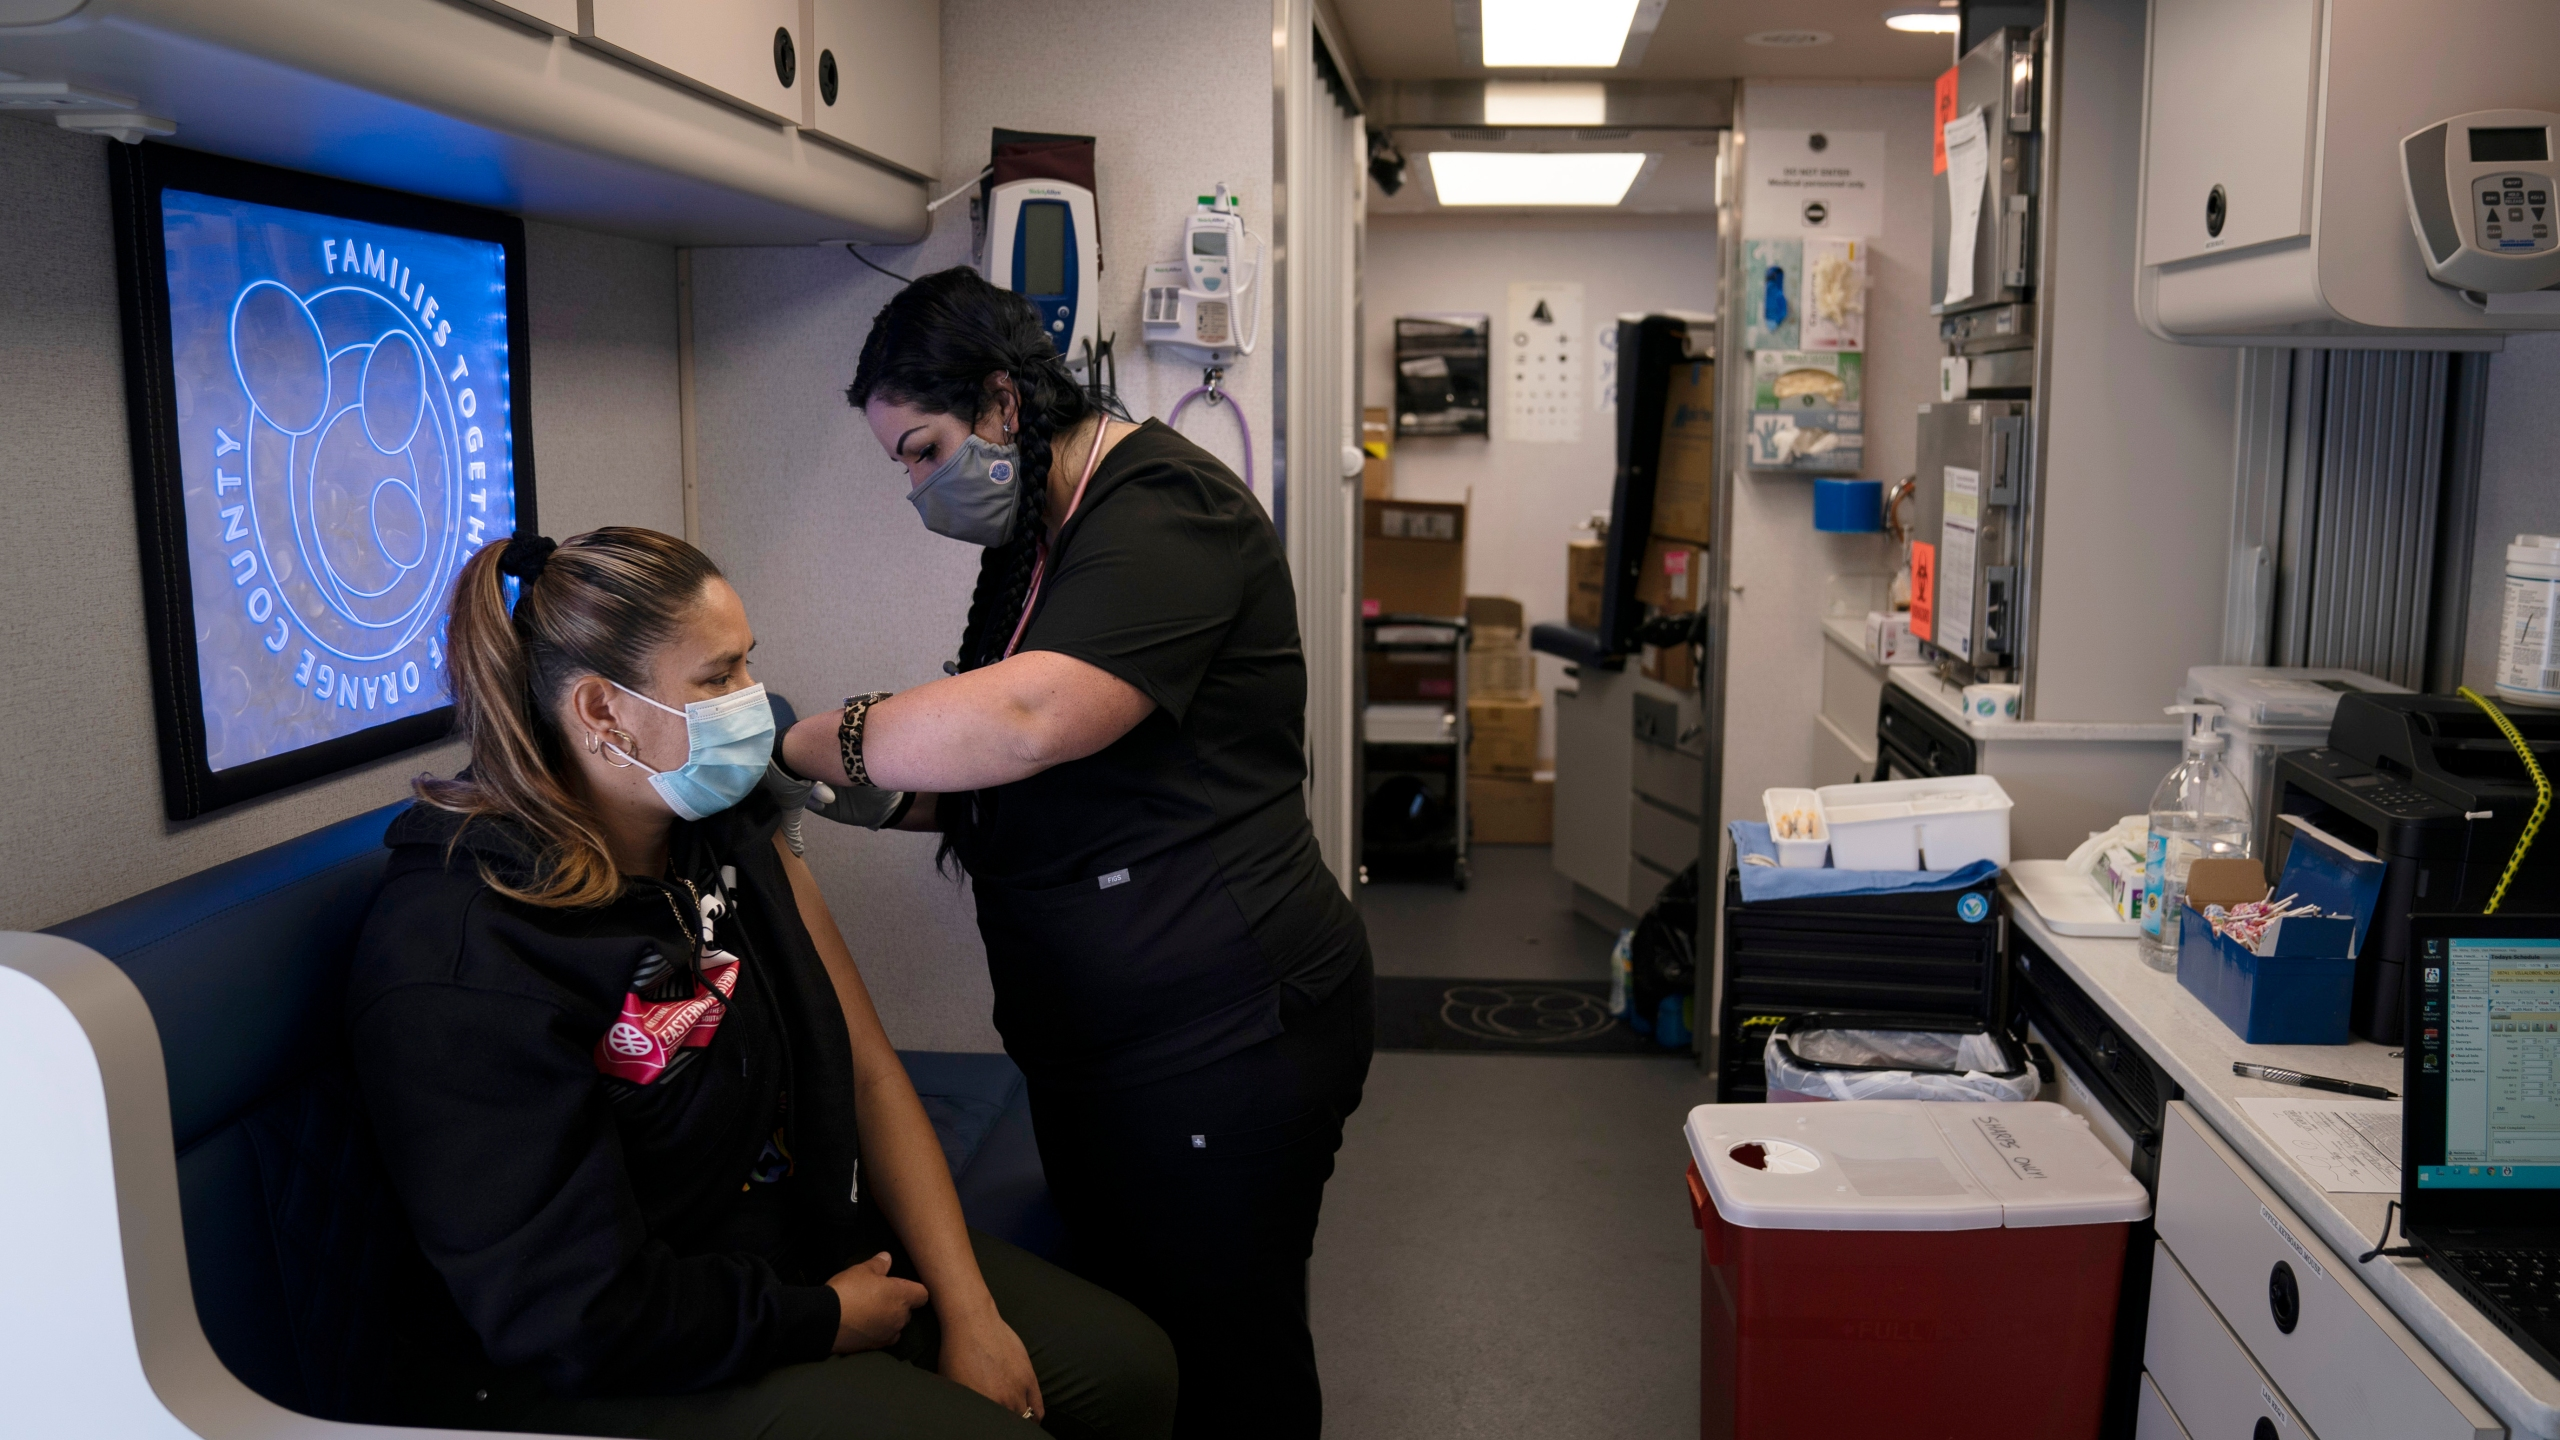 In this April 29, 2021, file photo, nurse Natasha Garcia administers a dose of the Moderna COVID-19 vaccine to Monica Villalobos in a mobile clinic set up in the parking lot of a shopping center in Orange, Calif. COVID-19 deaths in the U.S. have tumbled to an average of just over 600 per day — the lowest level in 10 months — with the number of lives lost dropping to single digits in well over half the states and hitting zero on some days. (AP Photo/Jae C. Hong, File)